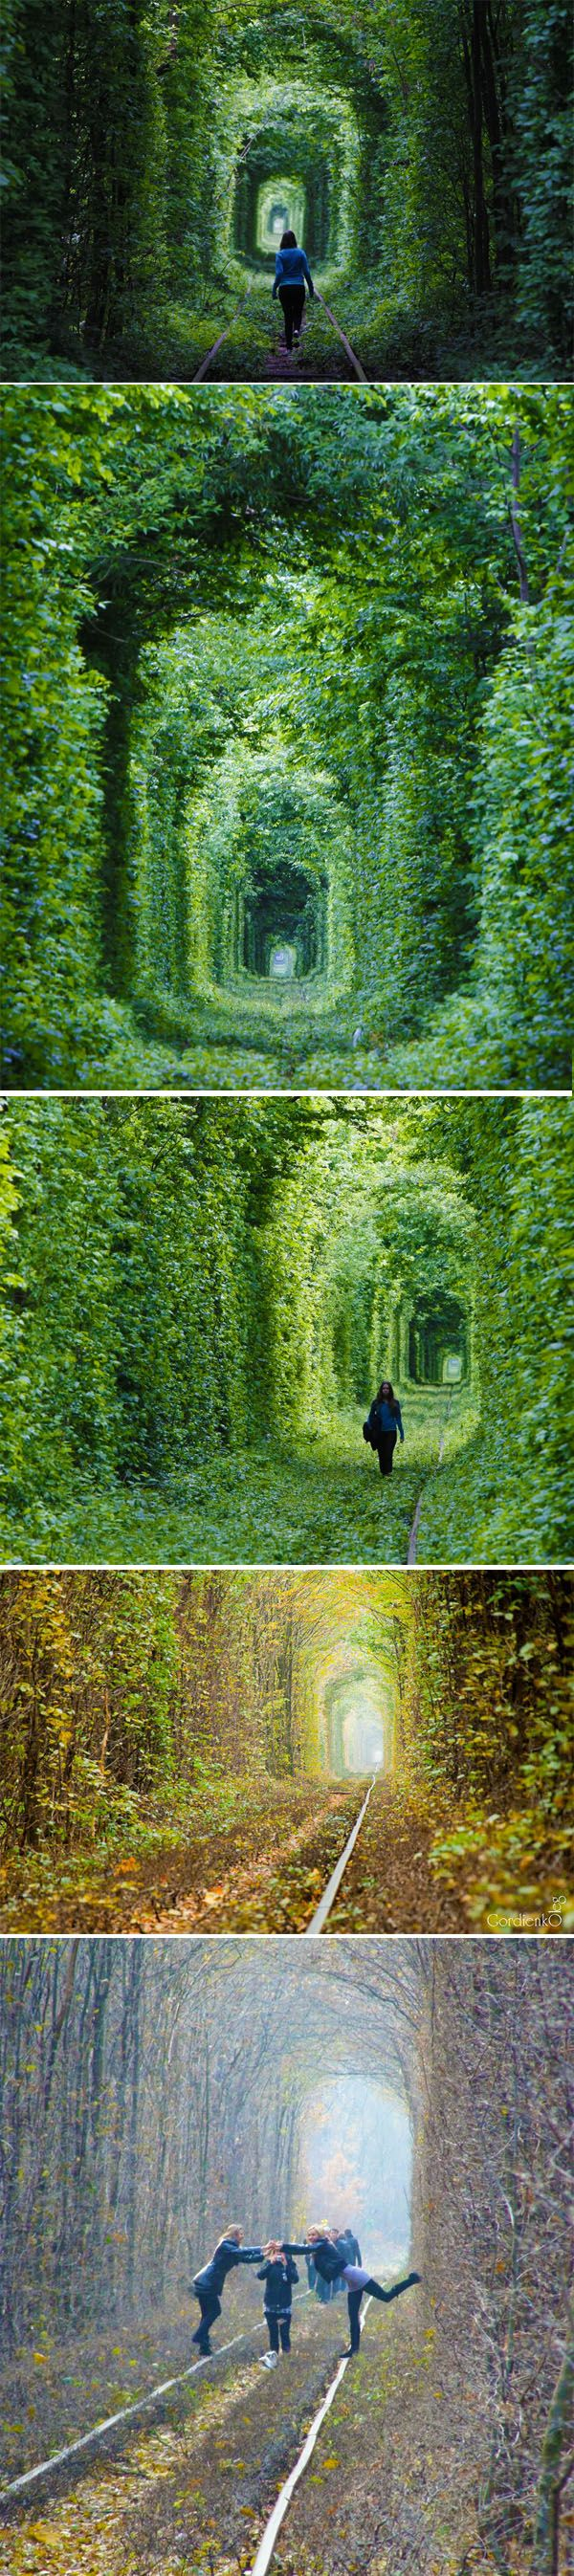 """Tunnel of Love"""" :: located in Kleven, Ukraine (Yet, another odd and unique place on earth.)"""